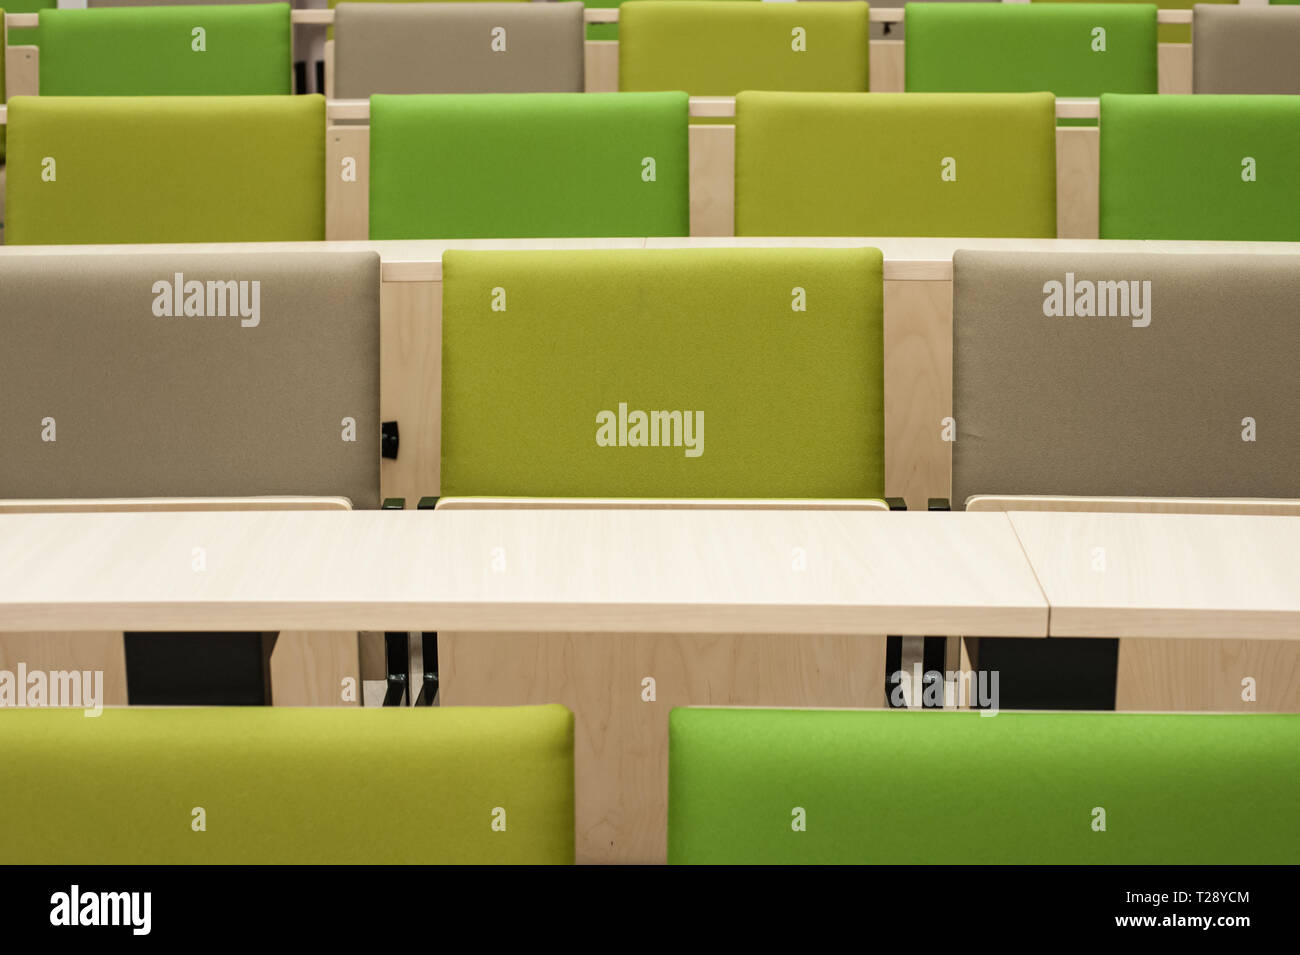 Colourful green seat covers in a university lecture theatre. - Stock Image